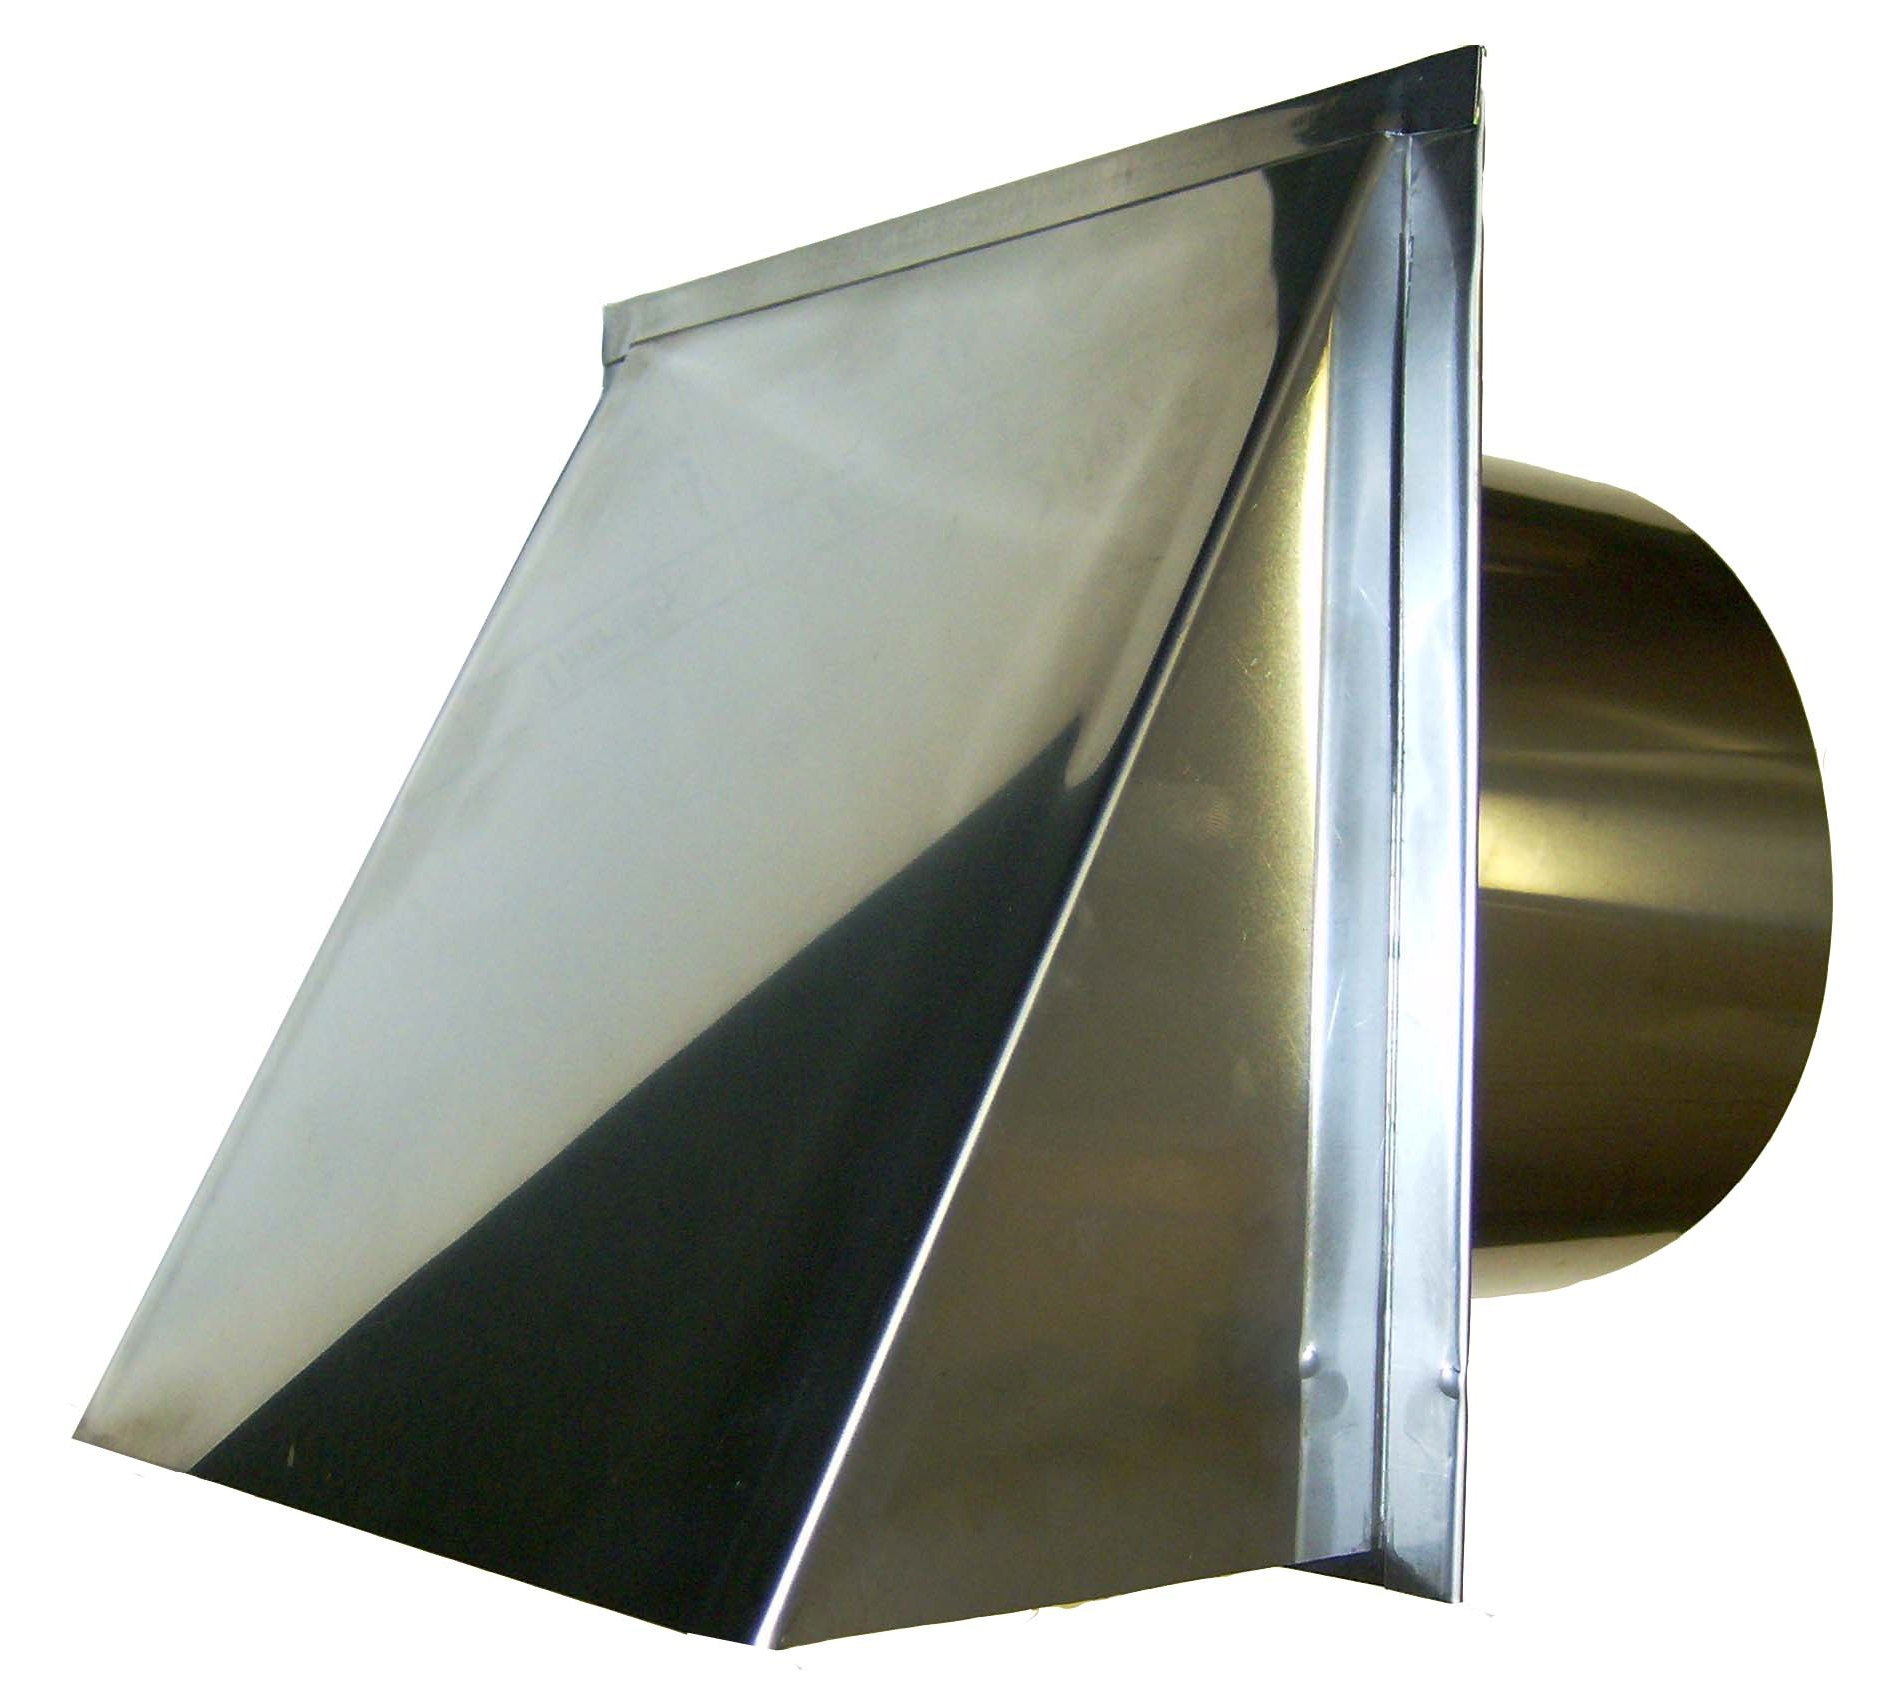 kitchen exhaust vent table with storage underneath range wall vents and roof from luxury metals stainess hood